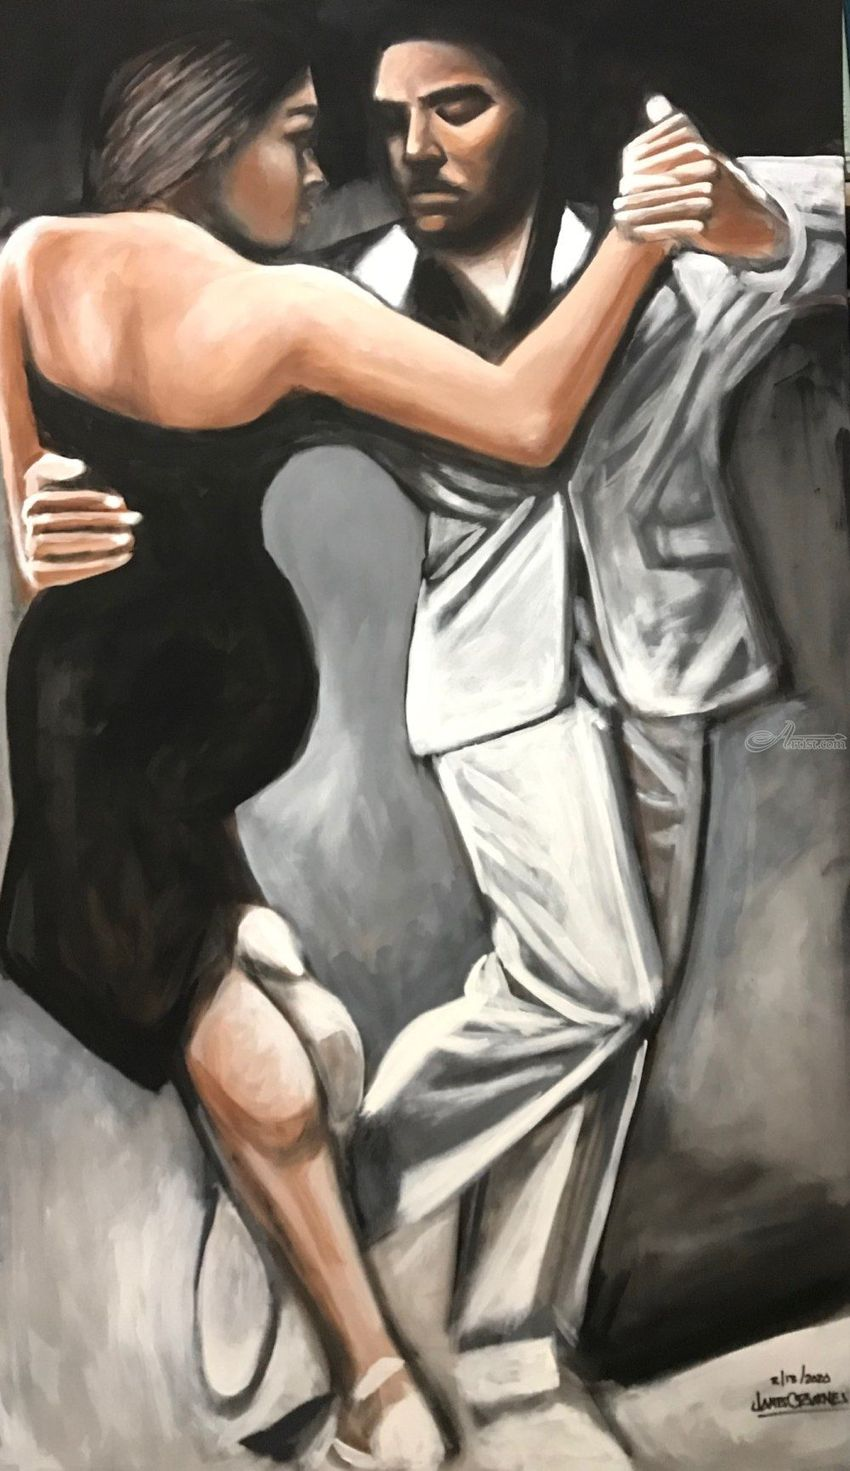 Dance with me!, Paintings, Fine Art, Figurative, Acrylic, By James Calvin Barnes